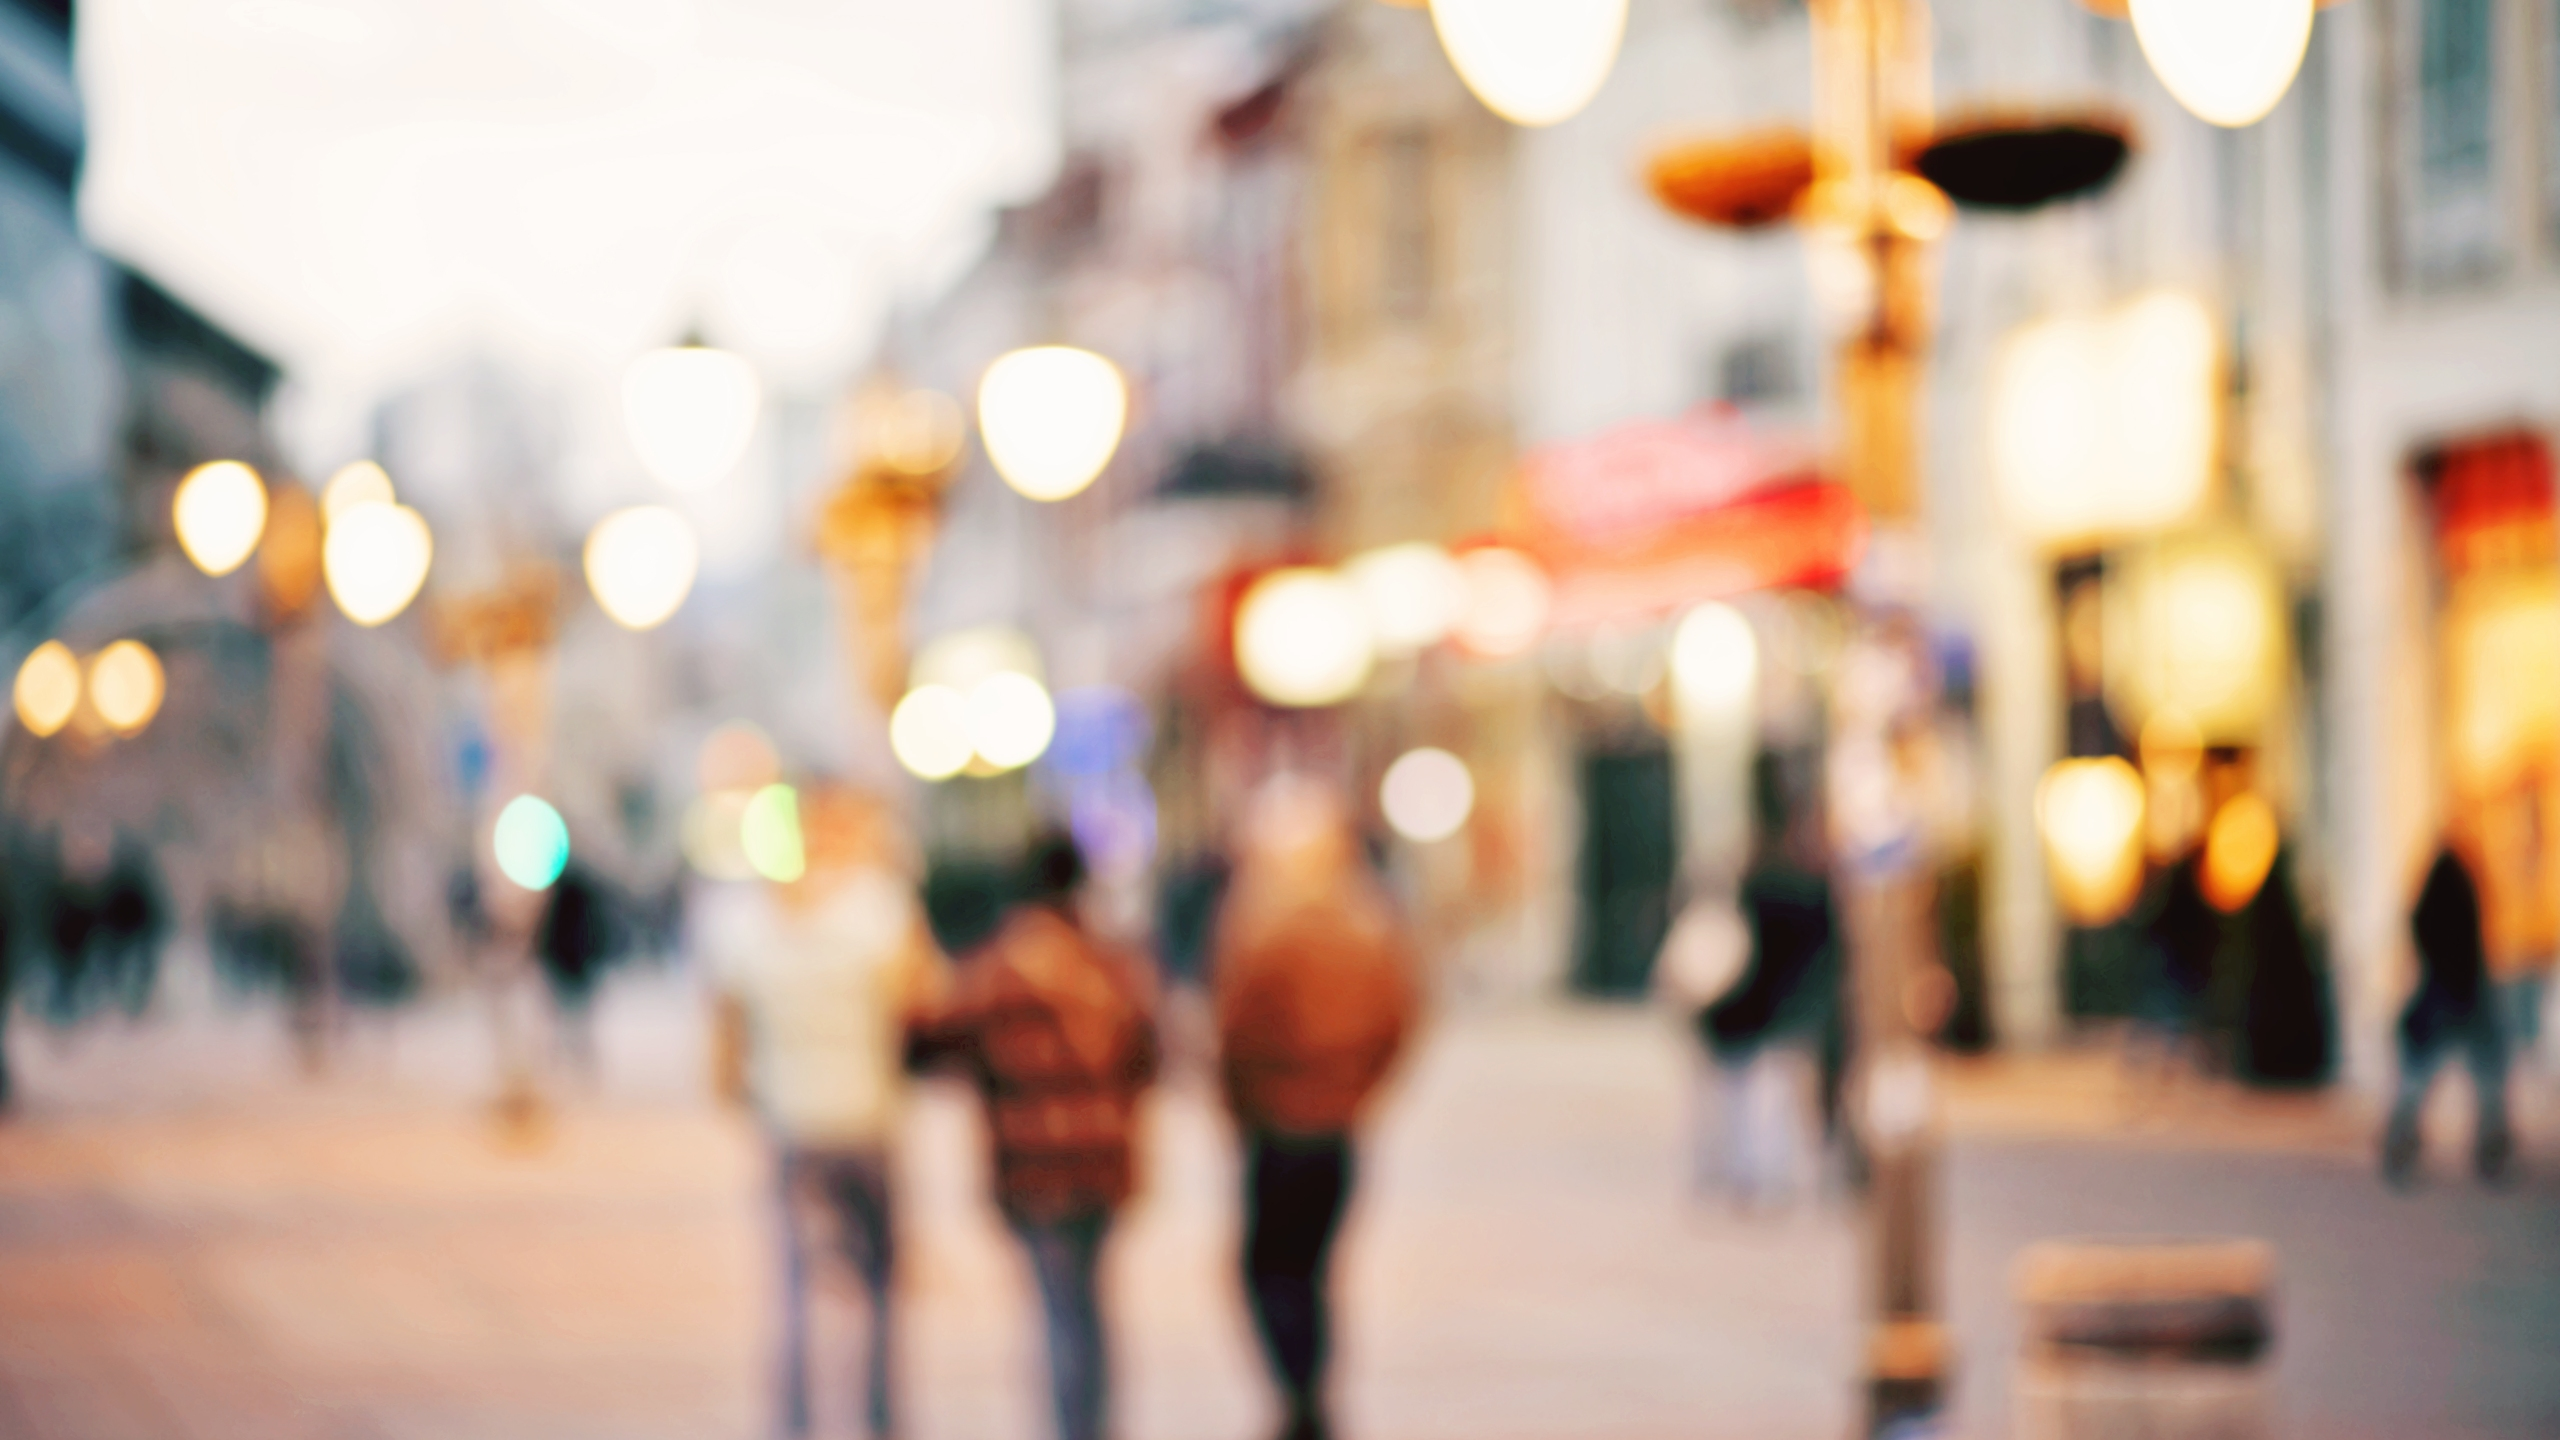 Abstract Blurred Background Of People Walking In City Center_1499361403311